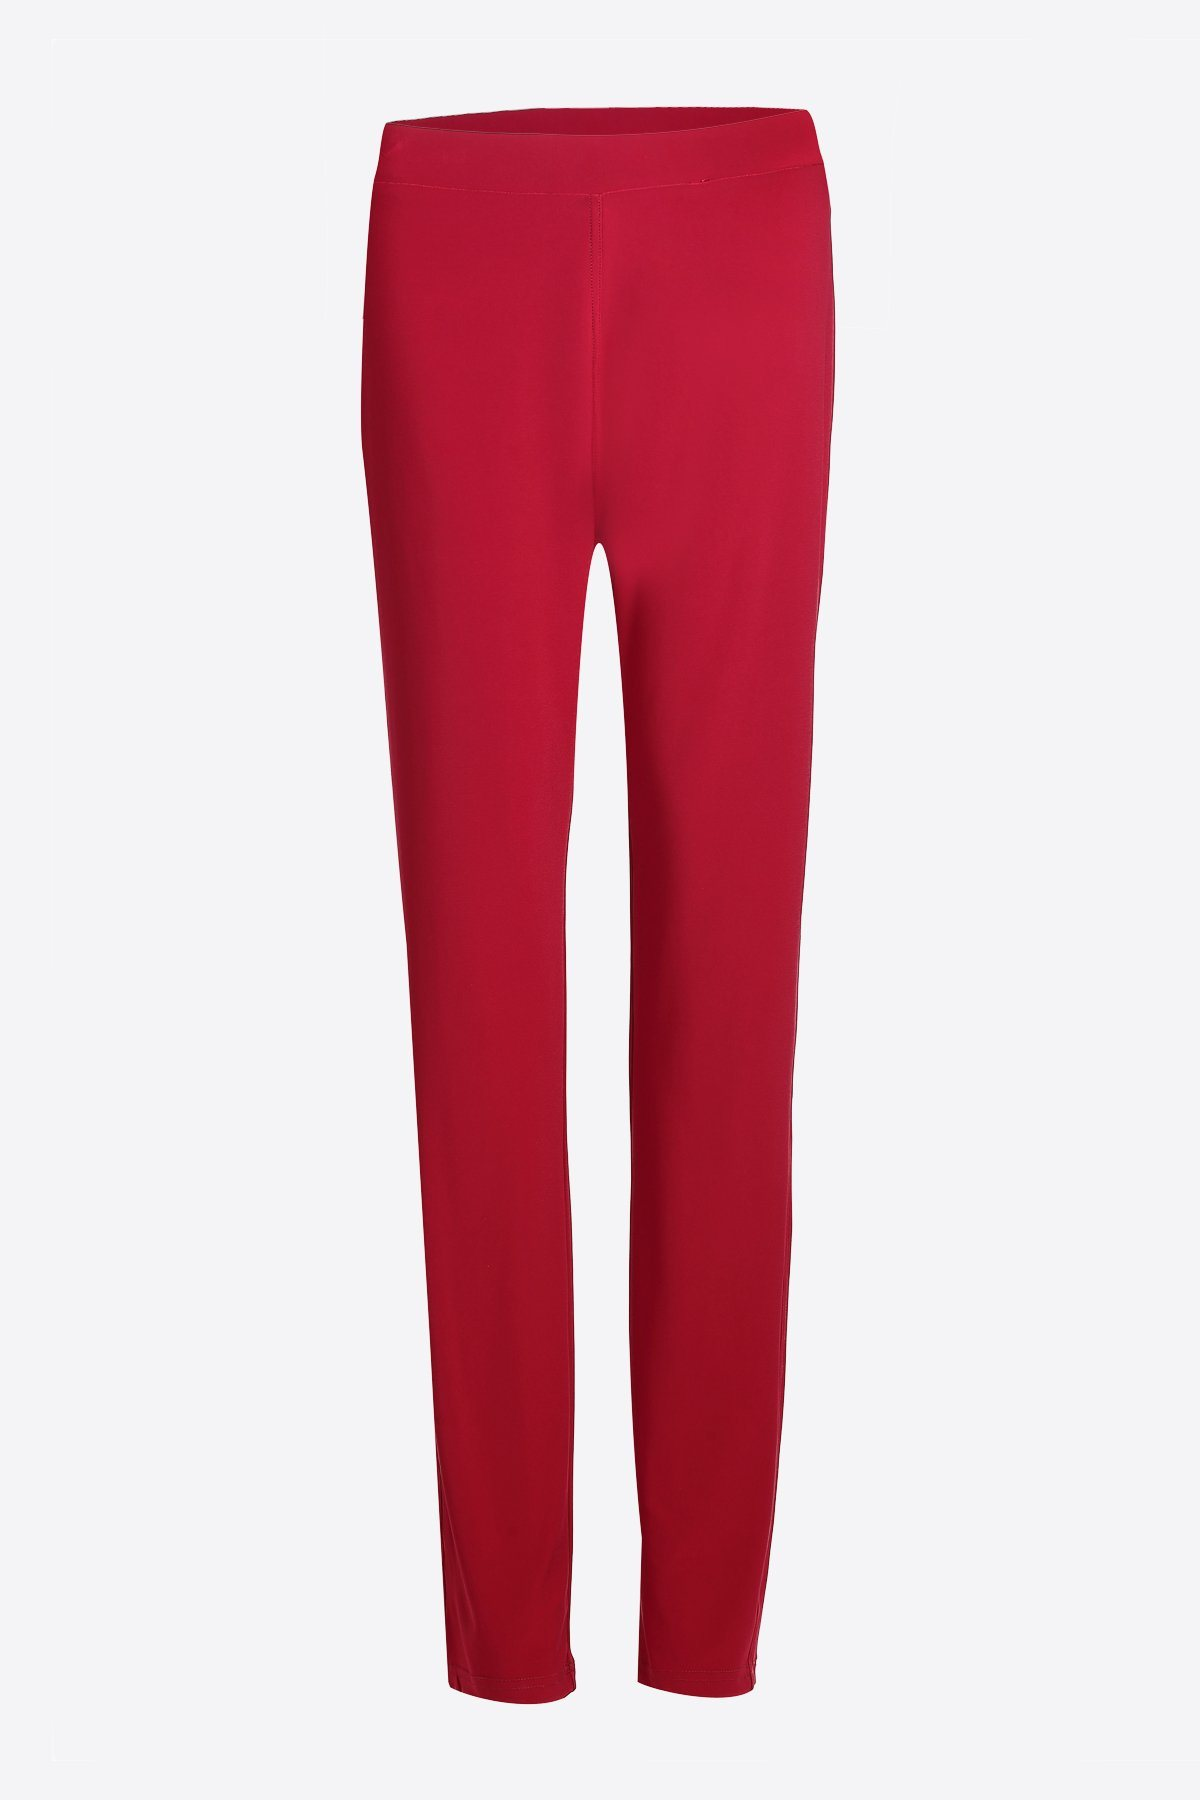 Women's Red Cropped Pocket Pants Rosarini